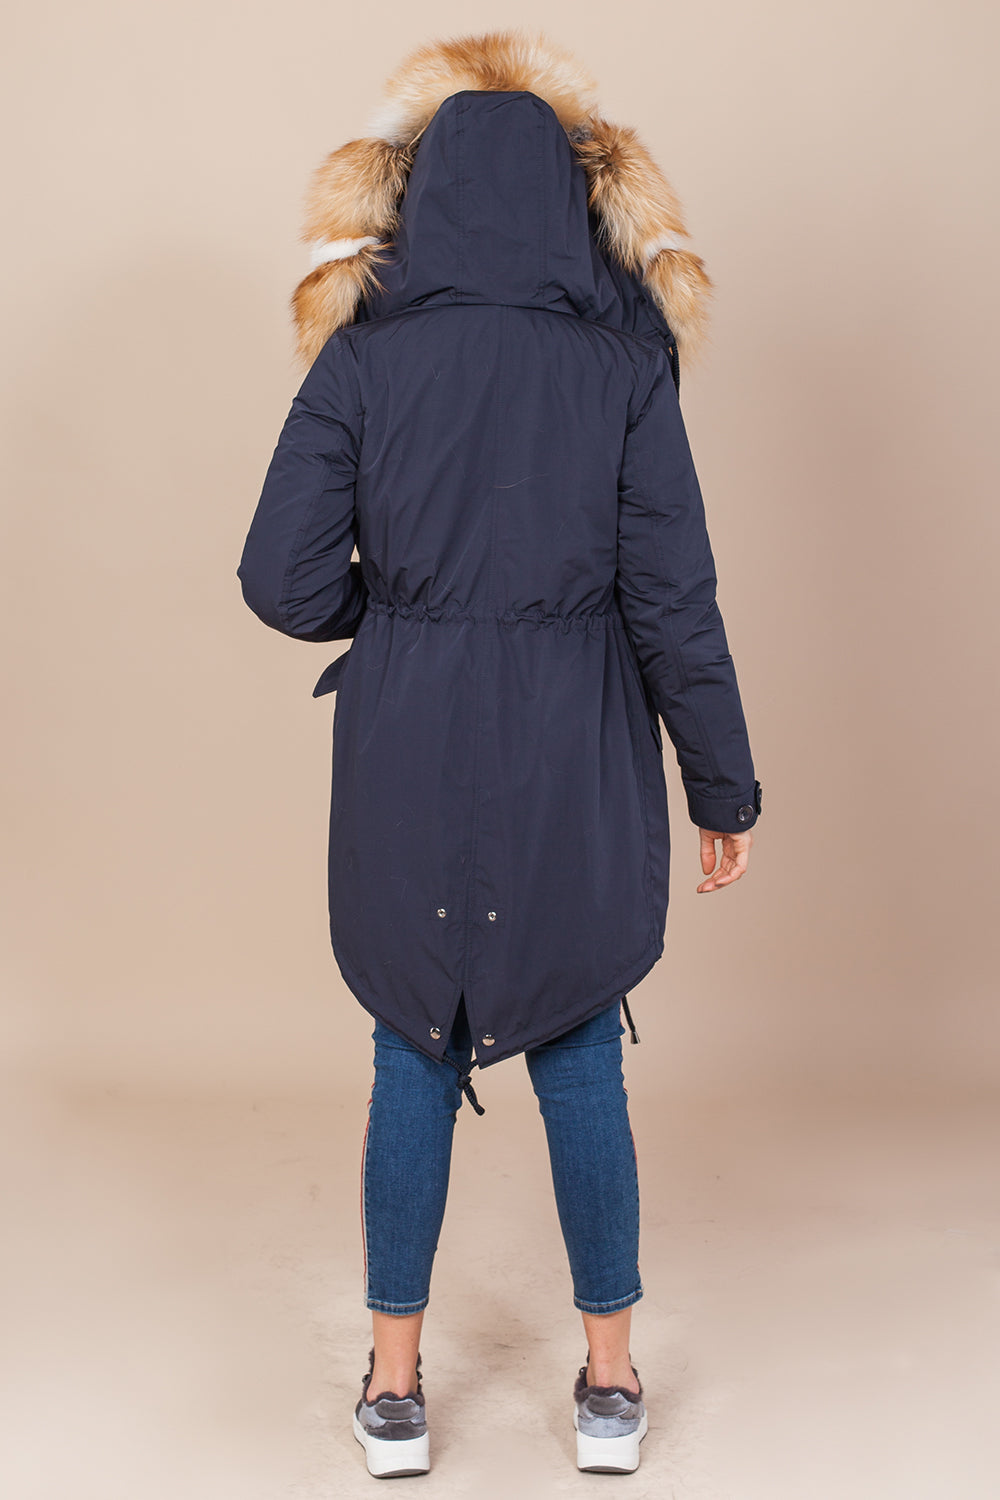 Dark Navy Parka Main Fabric is Waterproof / Raincoat Fabric With Mixed Gold Fox